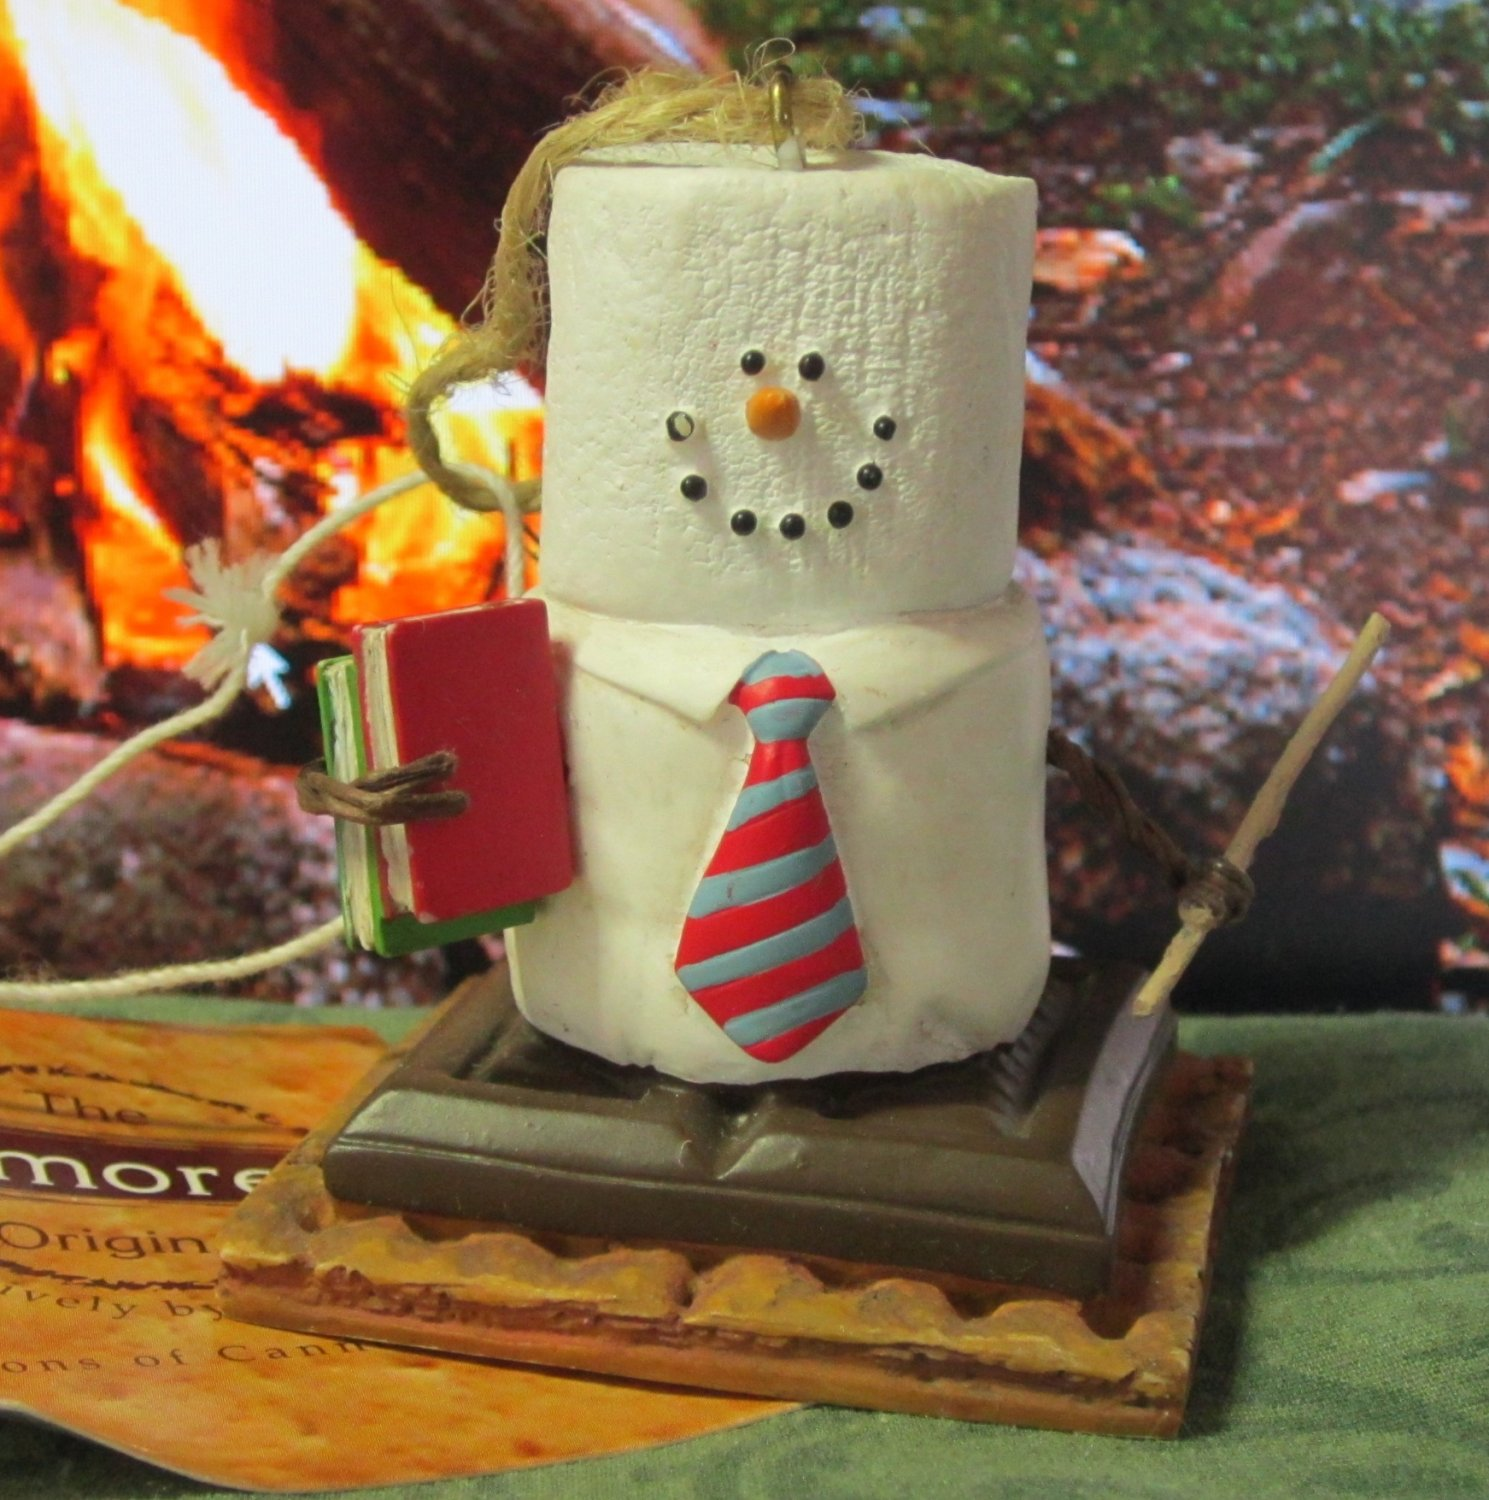 S mores ornaments - S Mores Midwest Cannon Falls Marshmallow Snowman Ornament Camping Teacher Nb